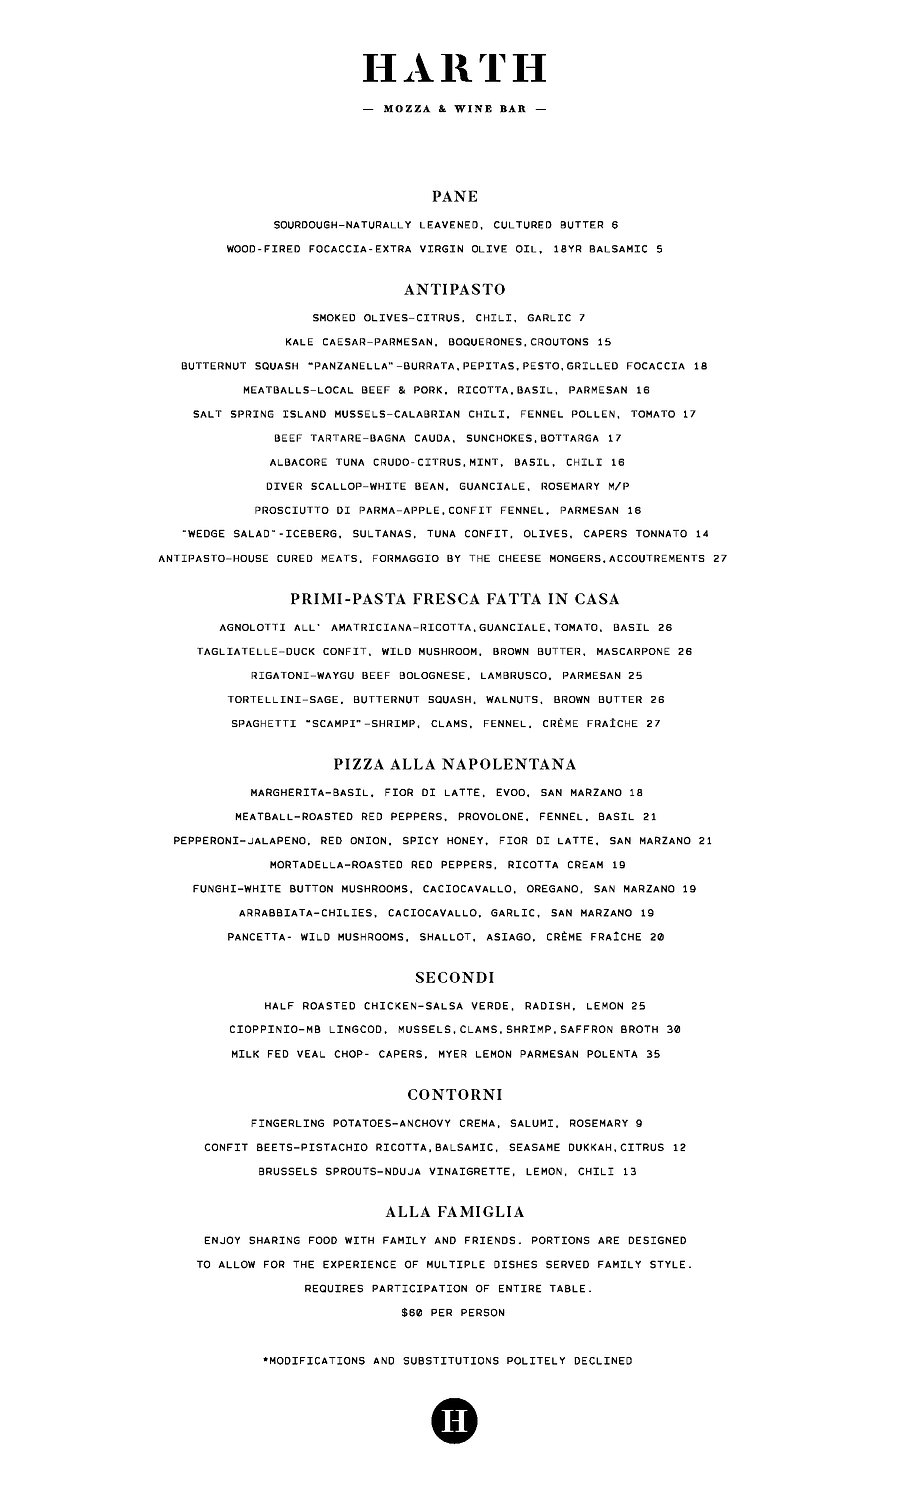 Harth_Menu_Dinner_Interactive.pdf MAR2_P